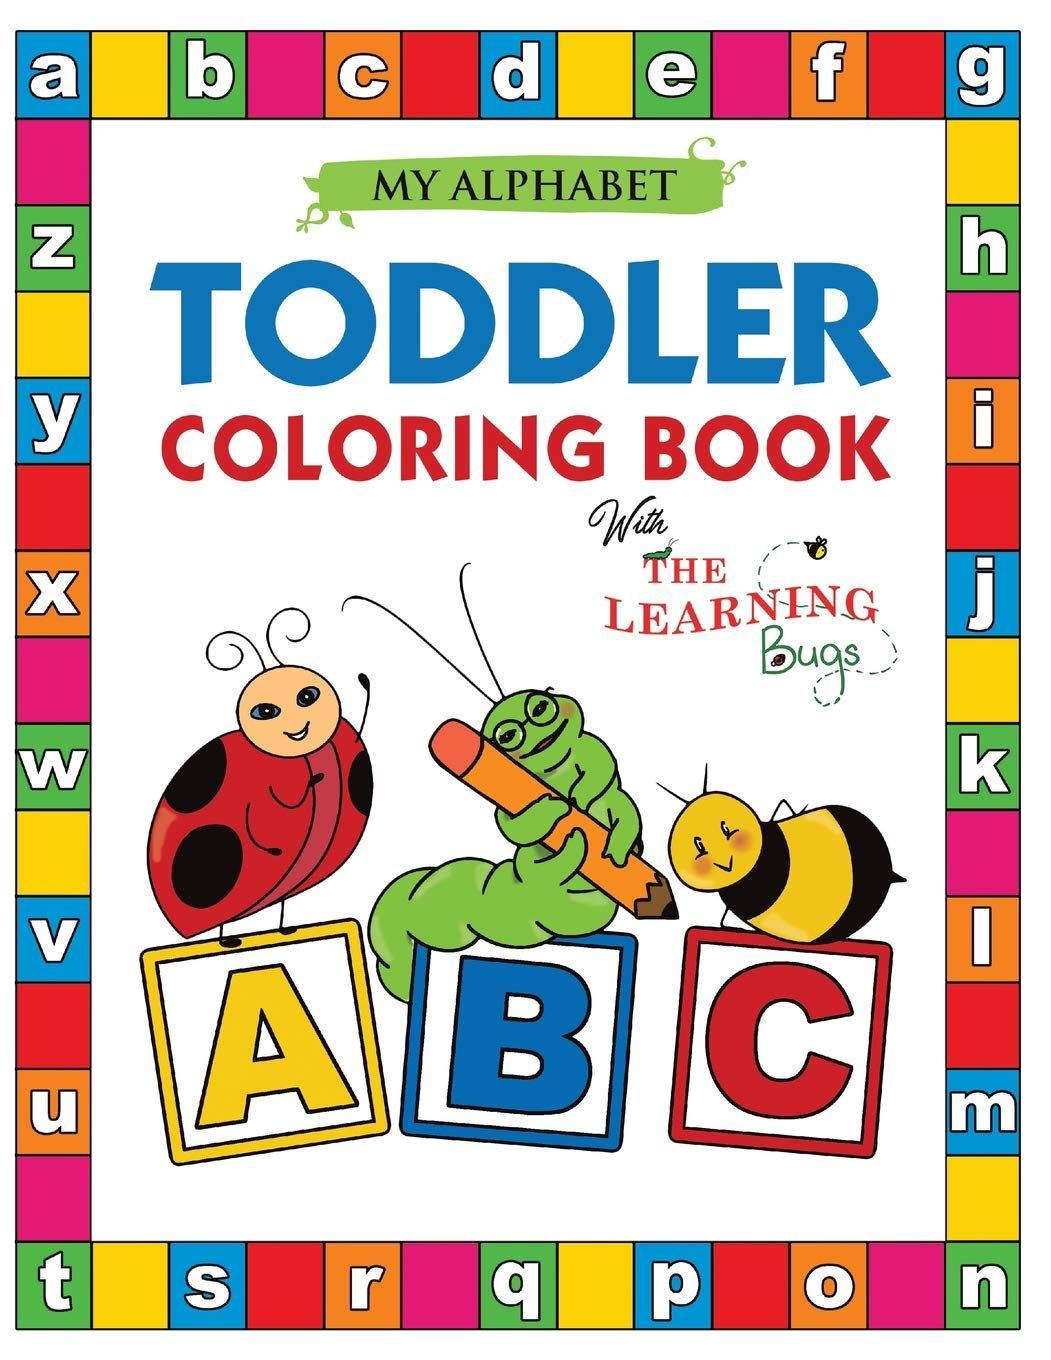 My Alphabet Toddler Coloring Book With The Learning Bugs Fun Coloring Books For Toddlers Amp Kids Toddler Coloring Book Kids Coloring Books Toddler Books